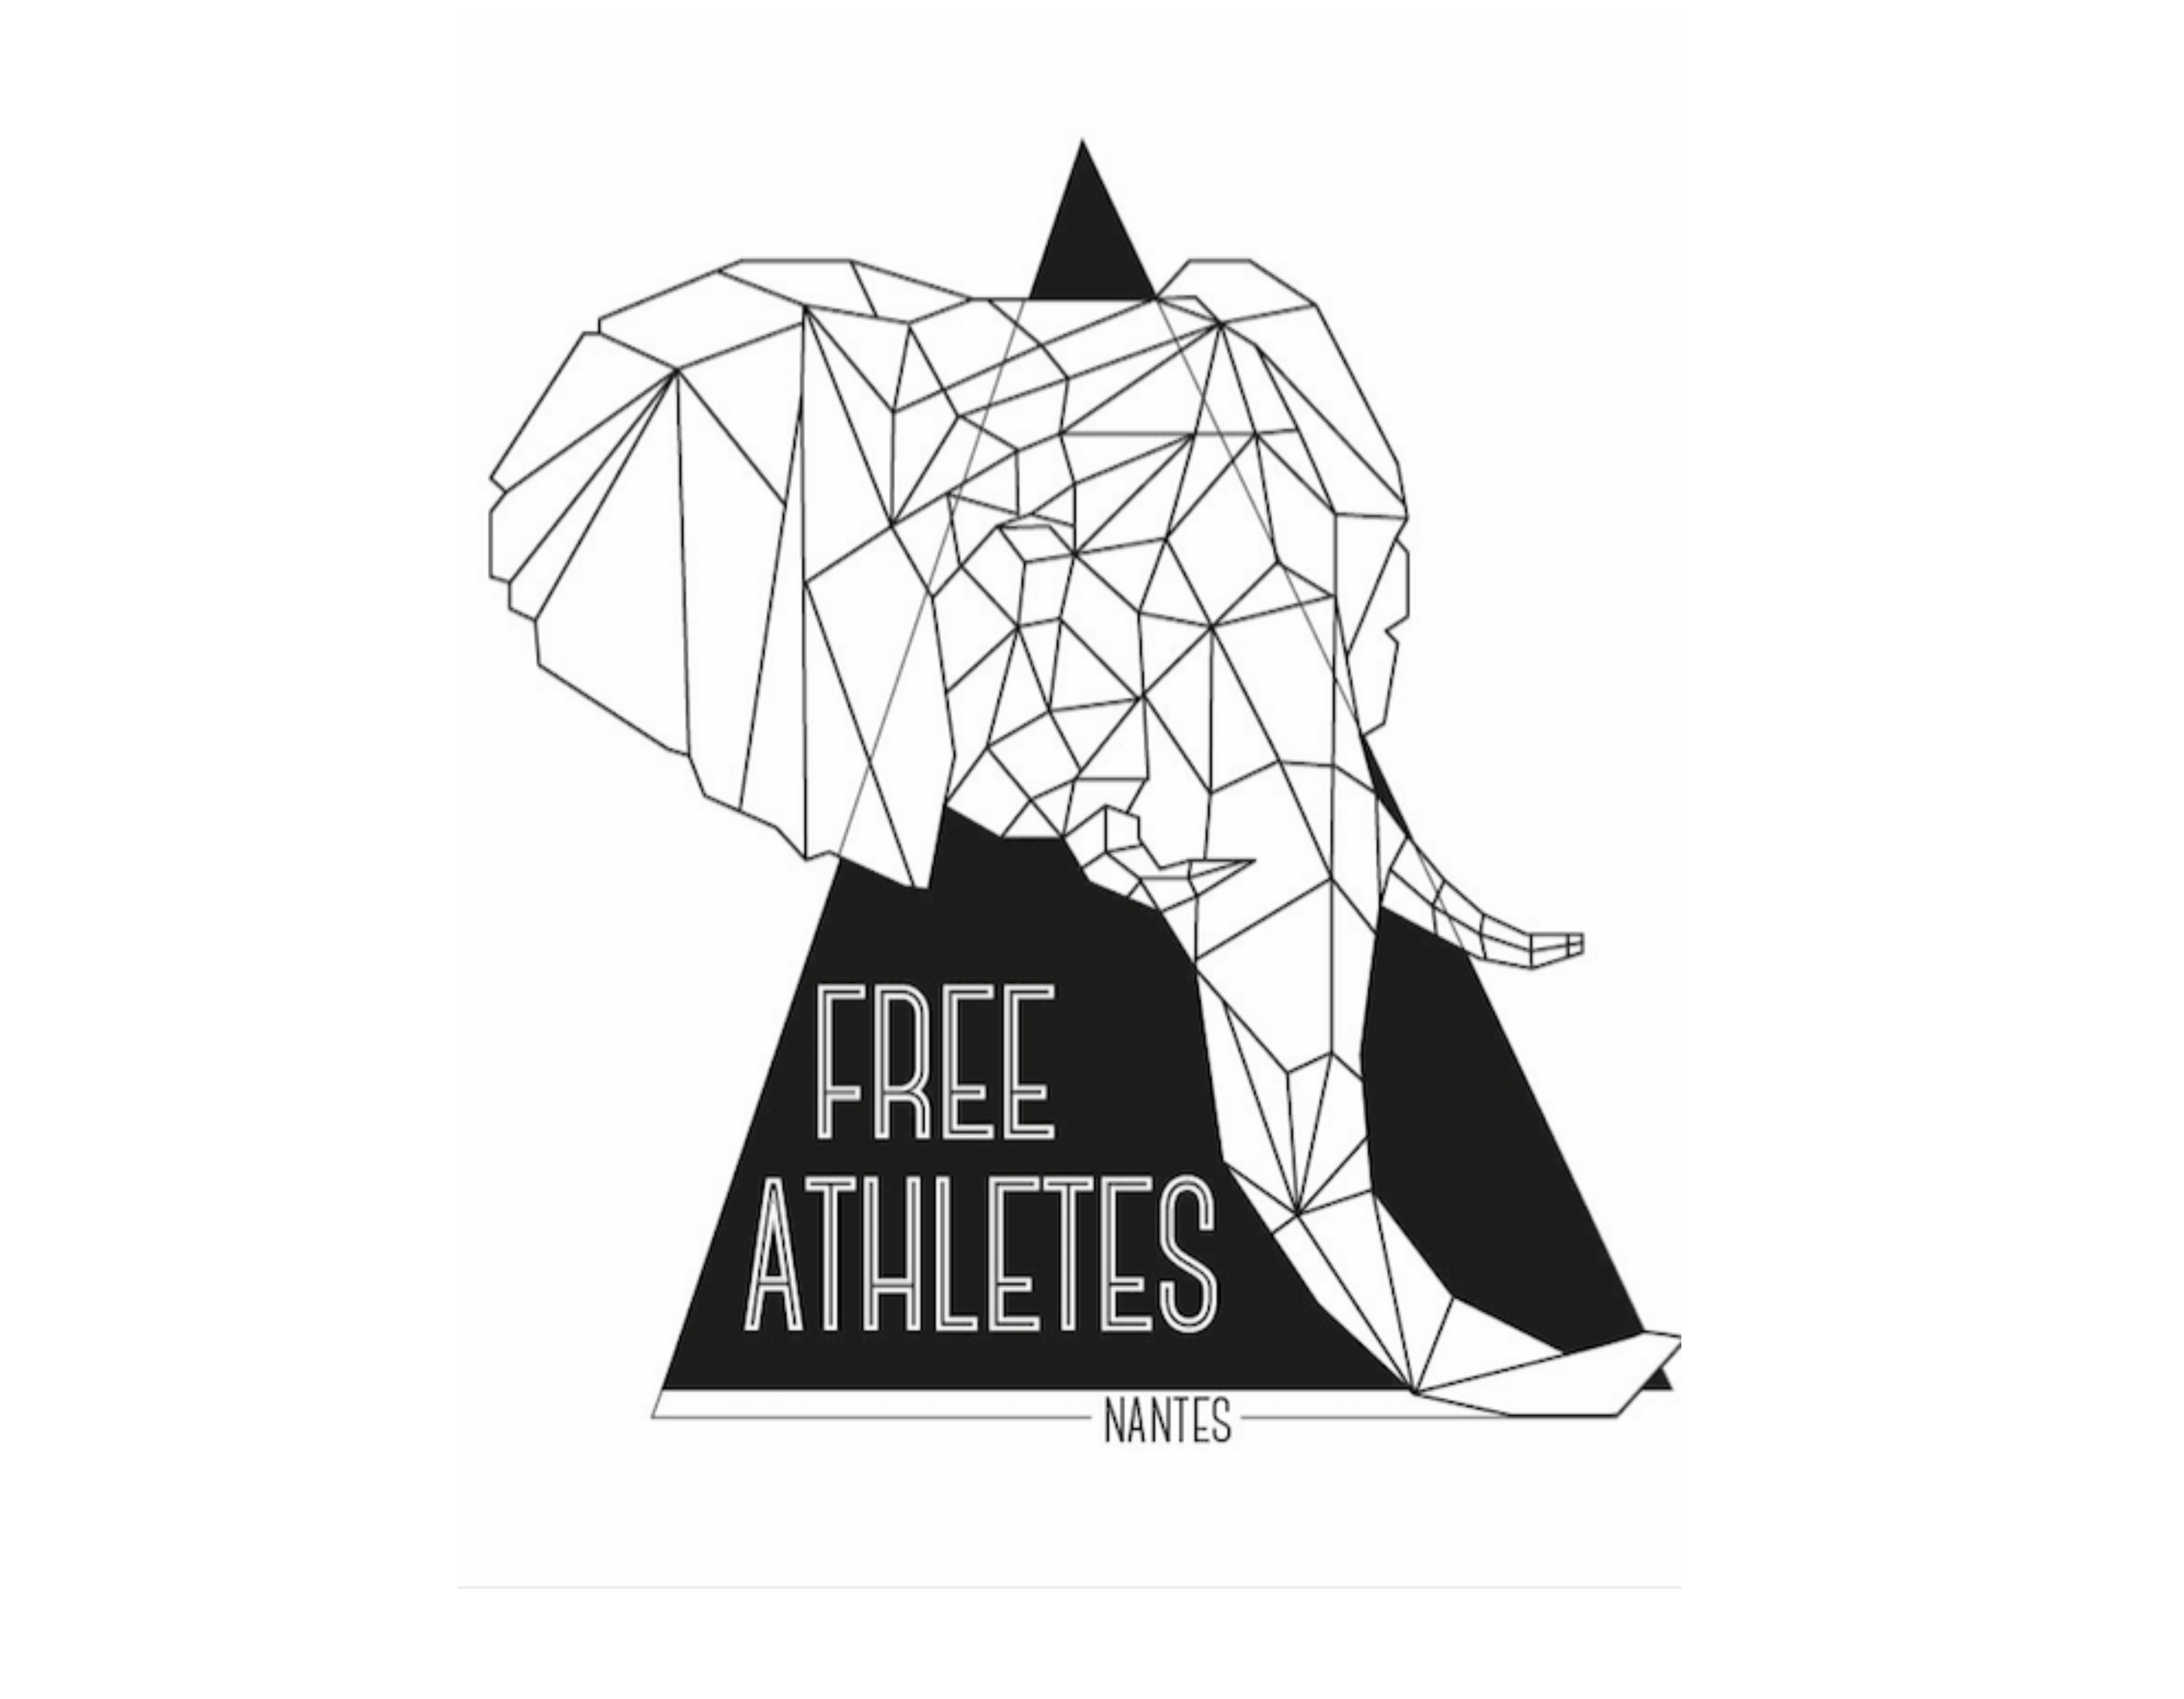 Association - FreeAthletes